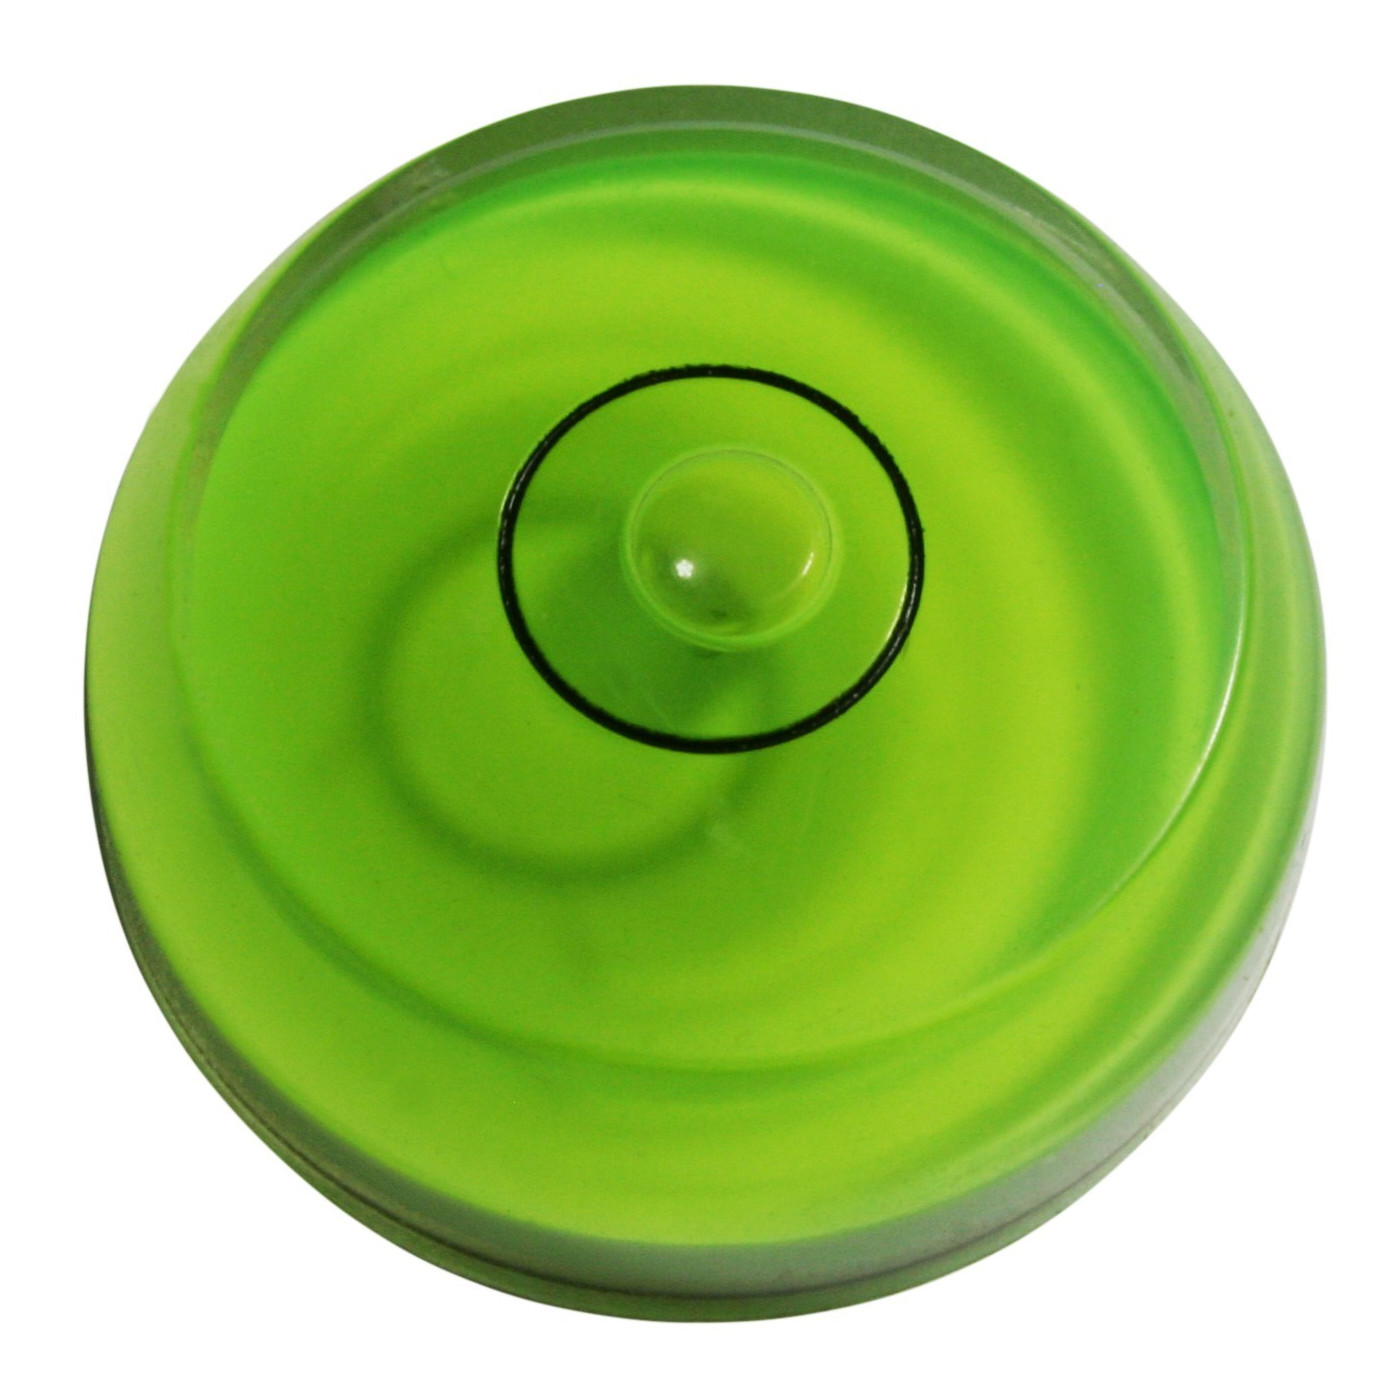 Set of 10 round bubble levels (green, chamfered)  - 1